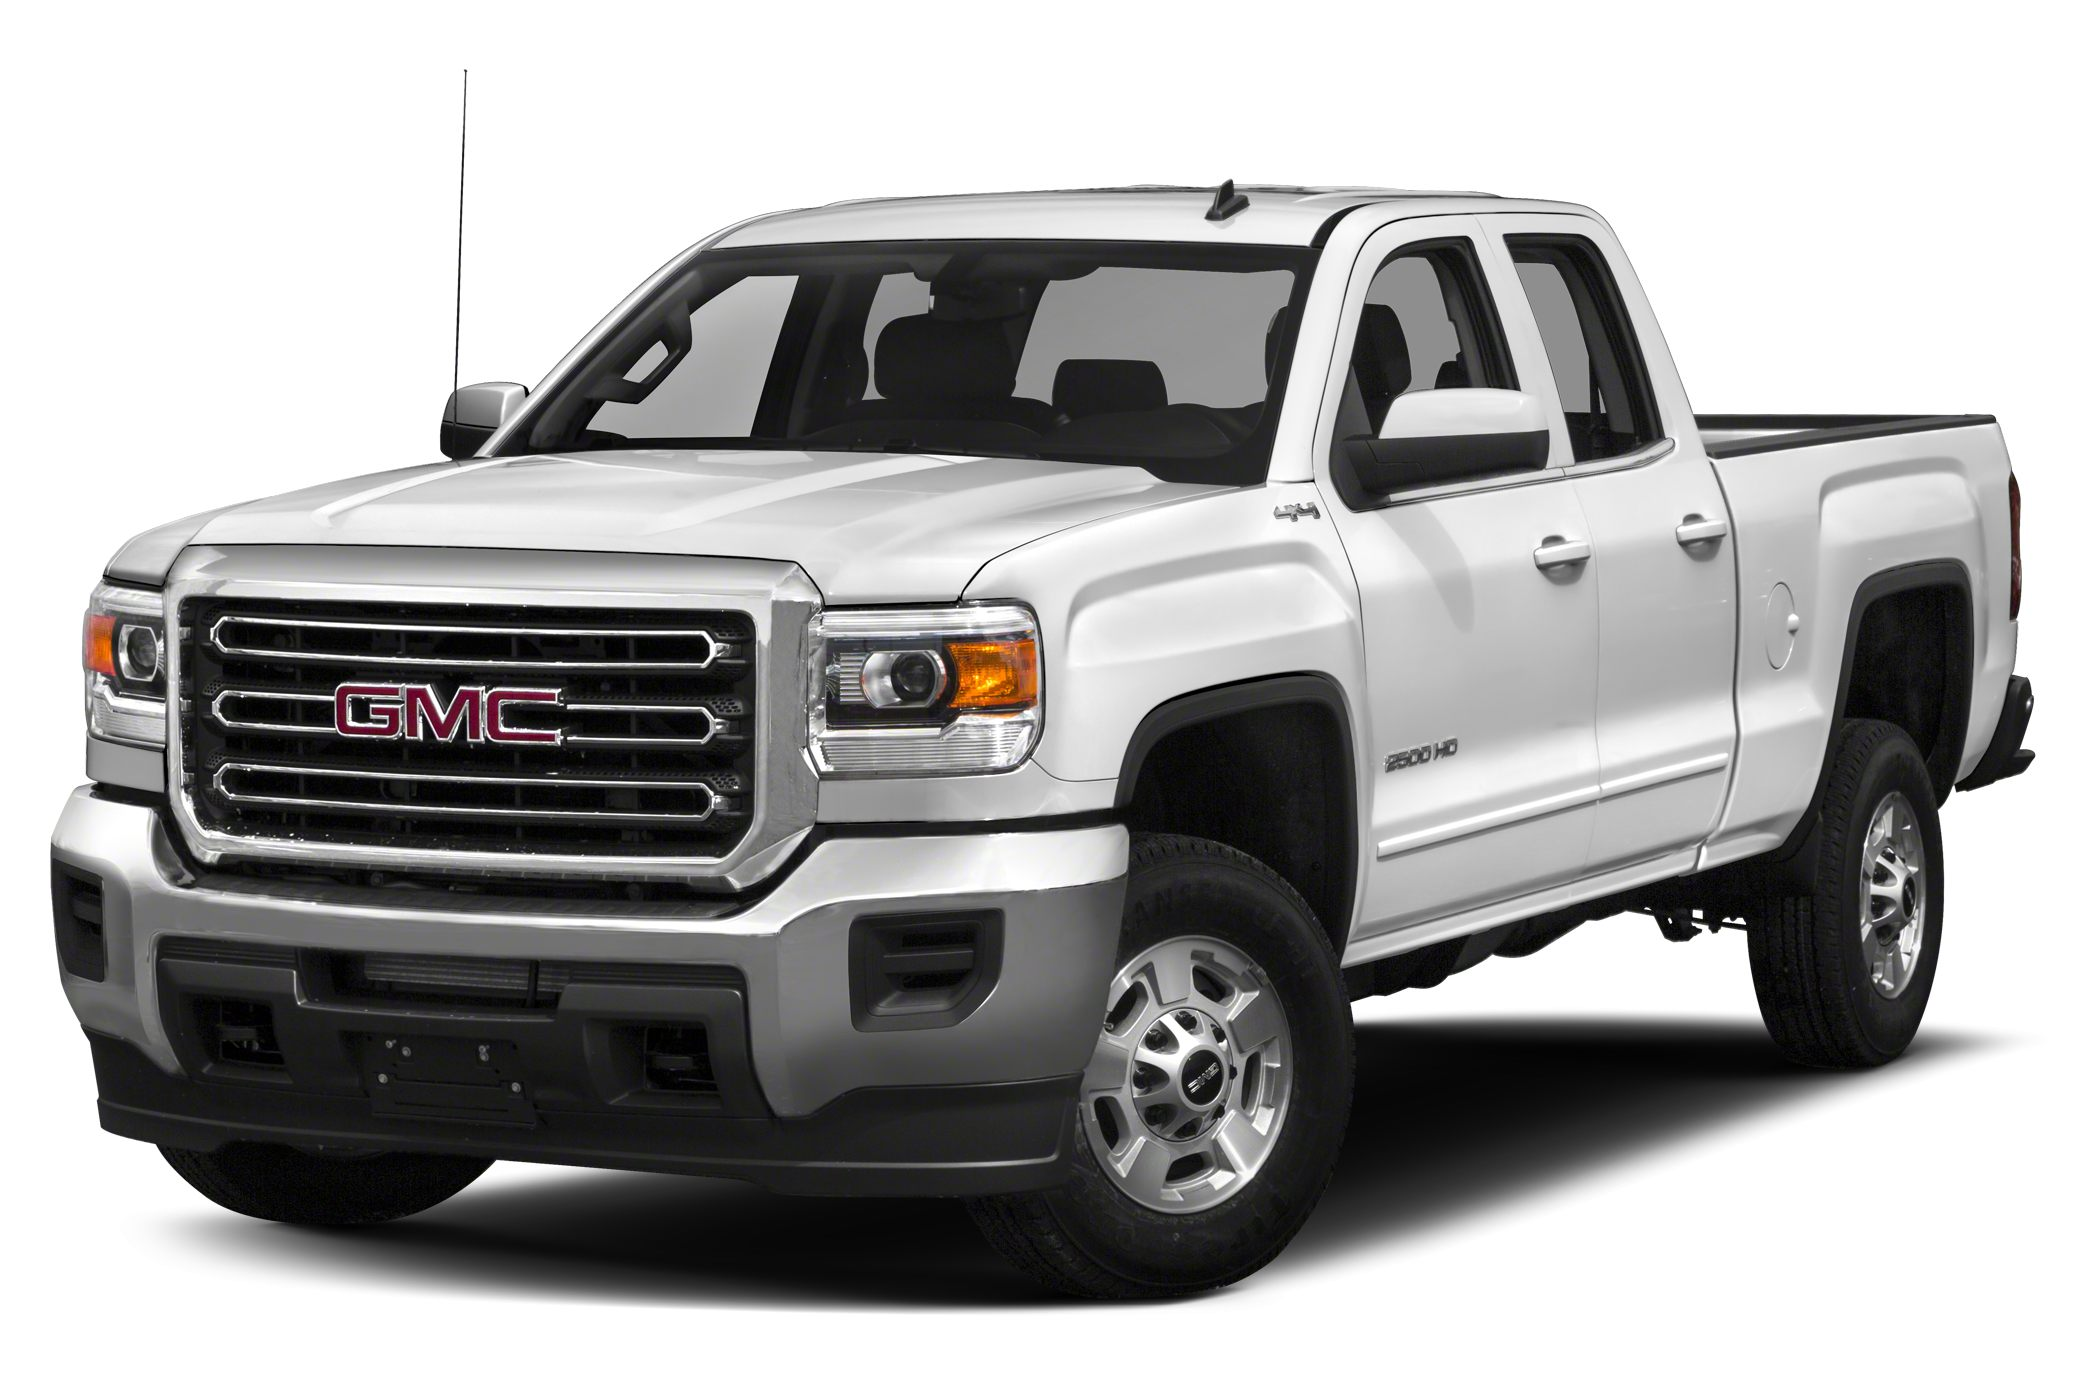 2015 GMC Sierra 2500 Base Extended Cab Pickup for sale in Reno for $36,290 with 100 miles.